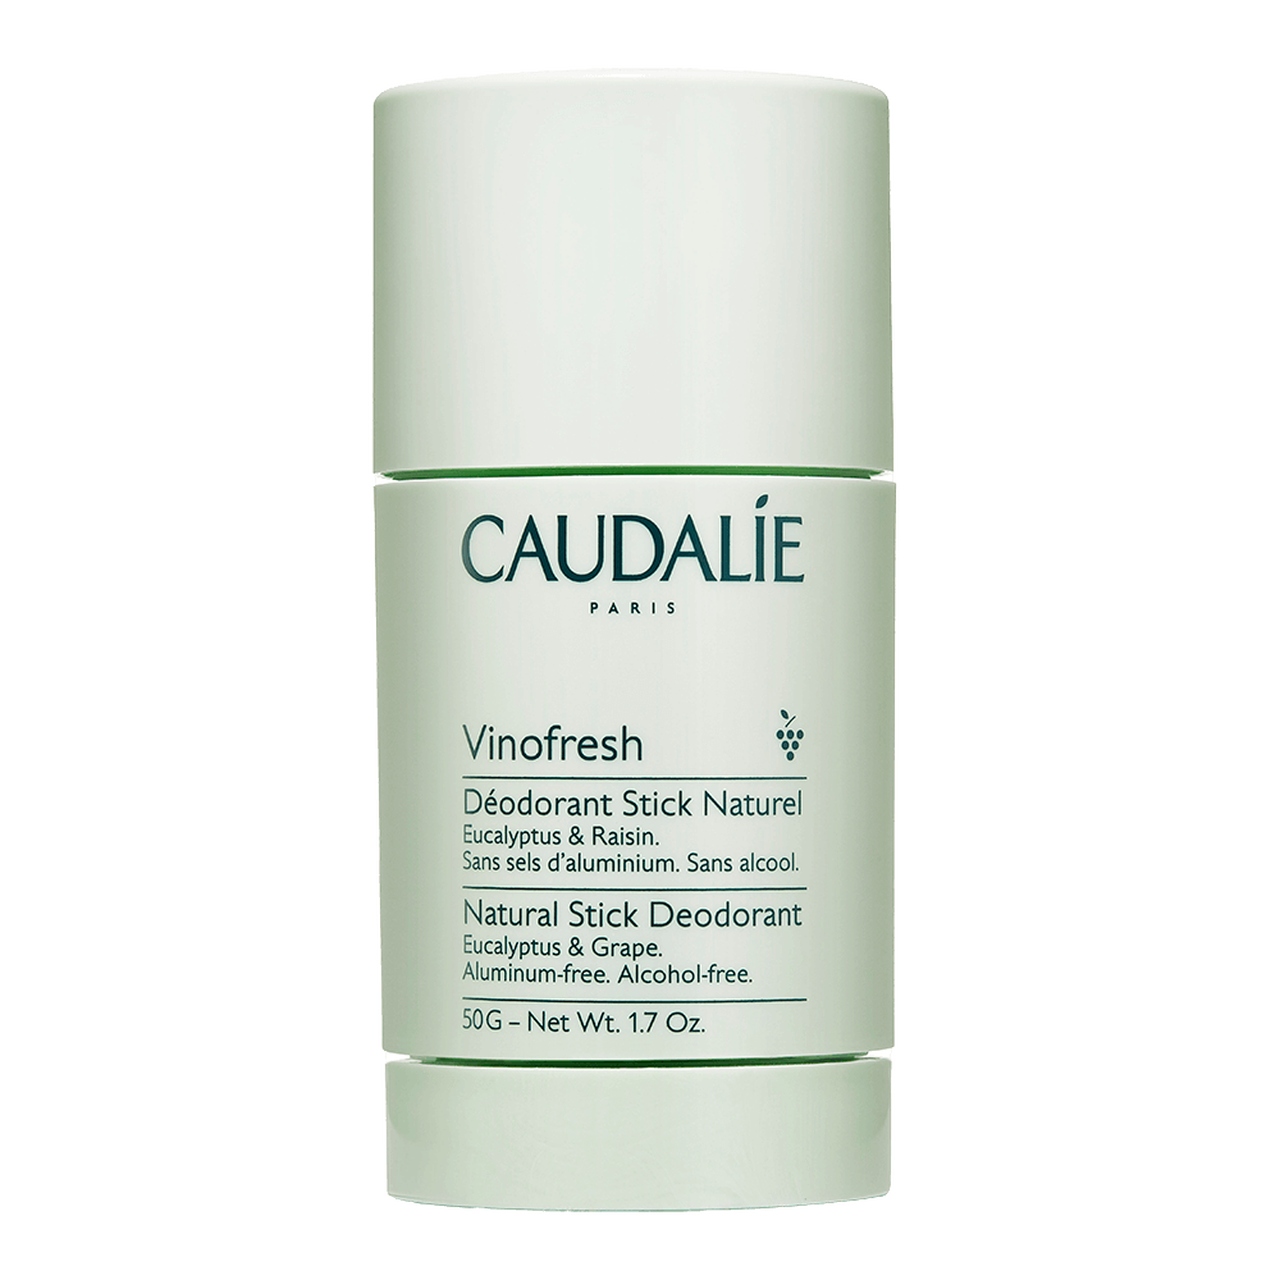 Vinofresh Natural Deodorant by Caudalie, one of the best French natural deodorants.